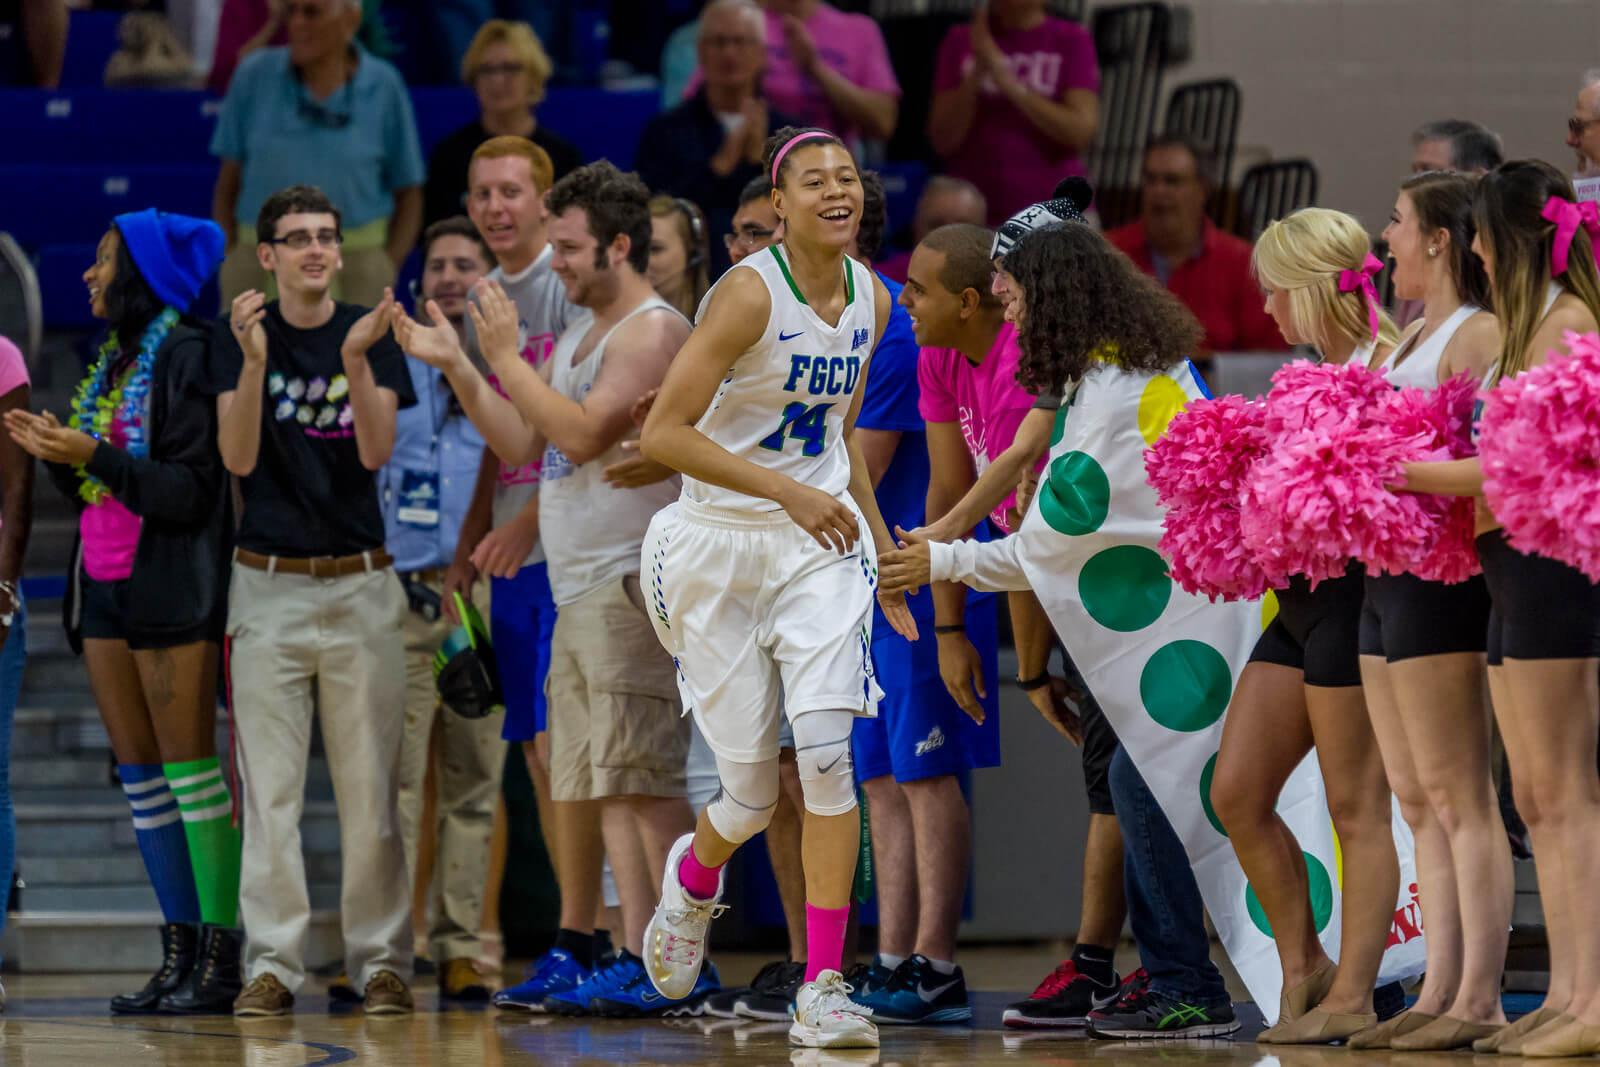 Former FGCU women's basketball standout Whitney Knight waived by the LA Sparks